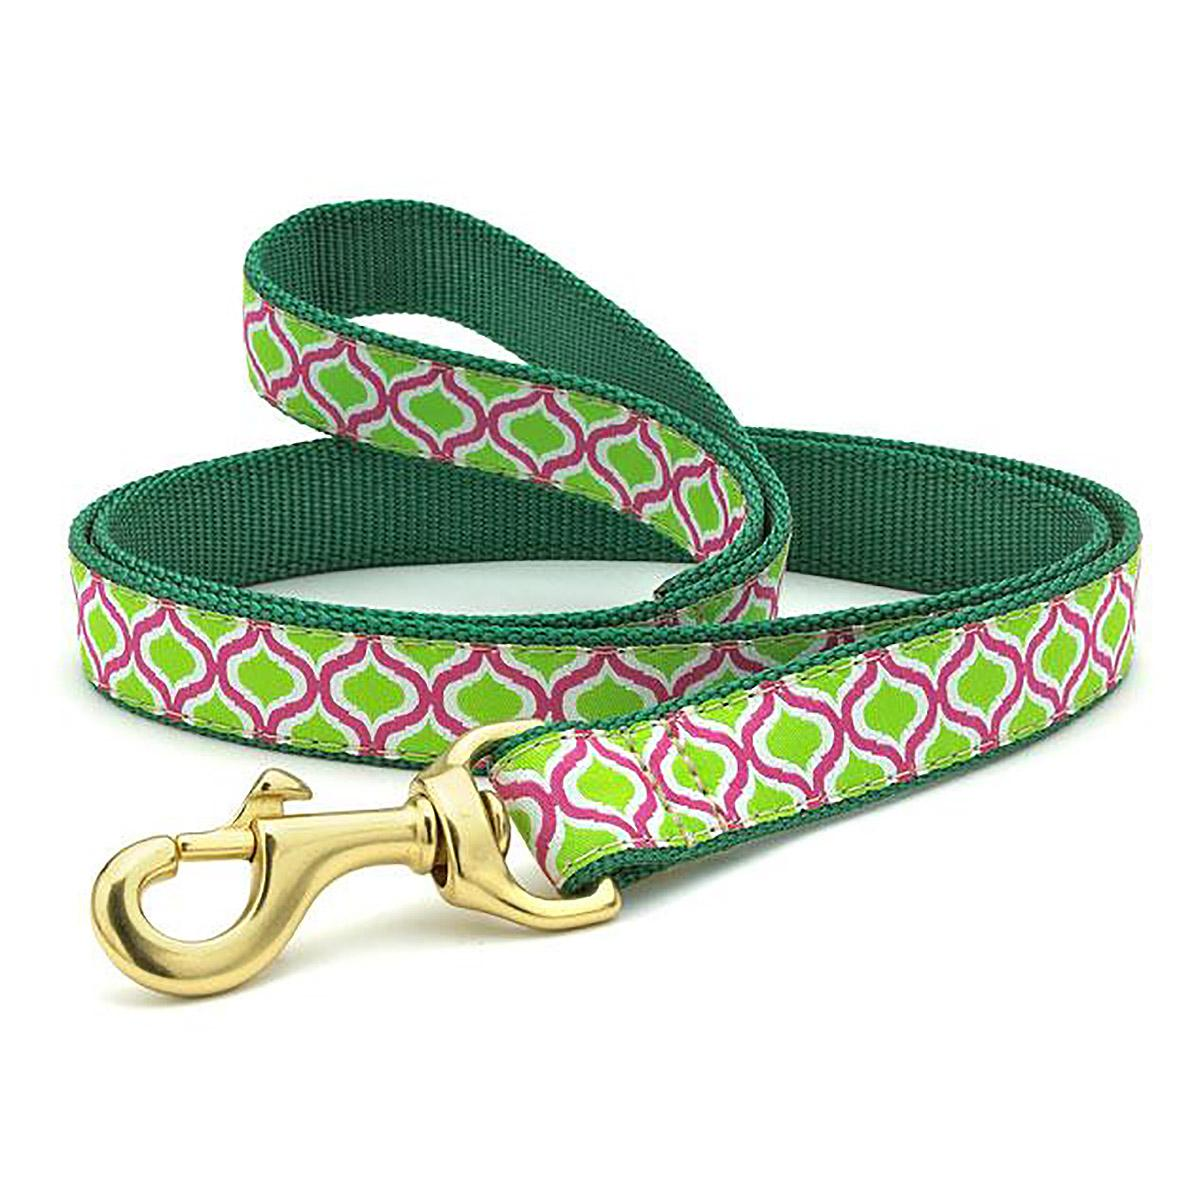 Green Kismet Dog Leash by Up Country